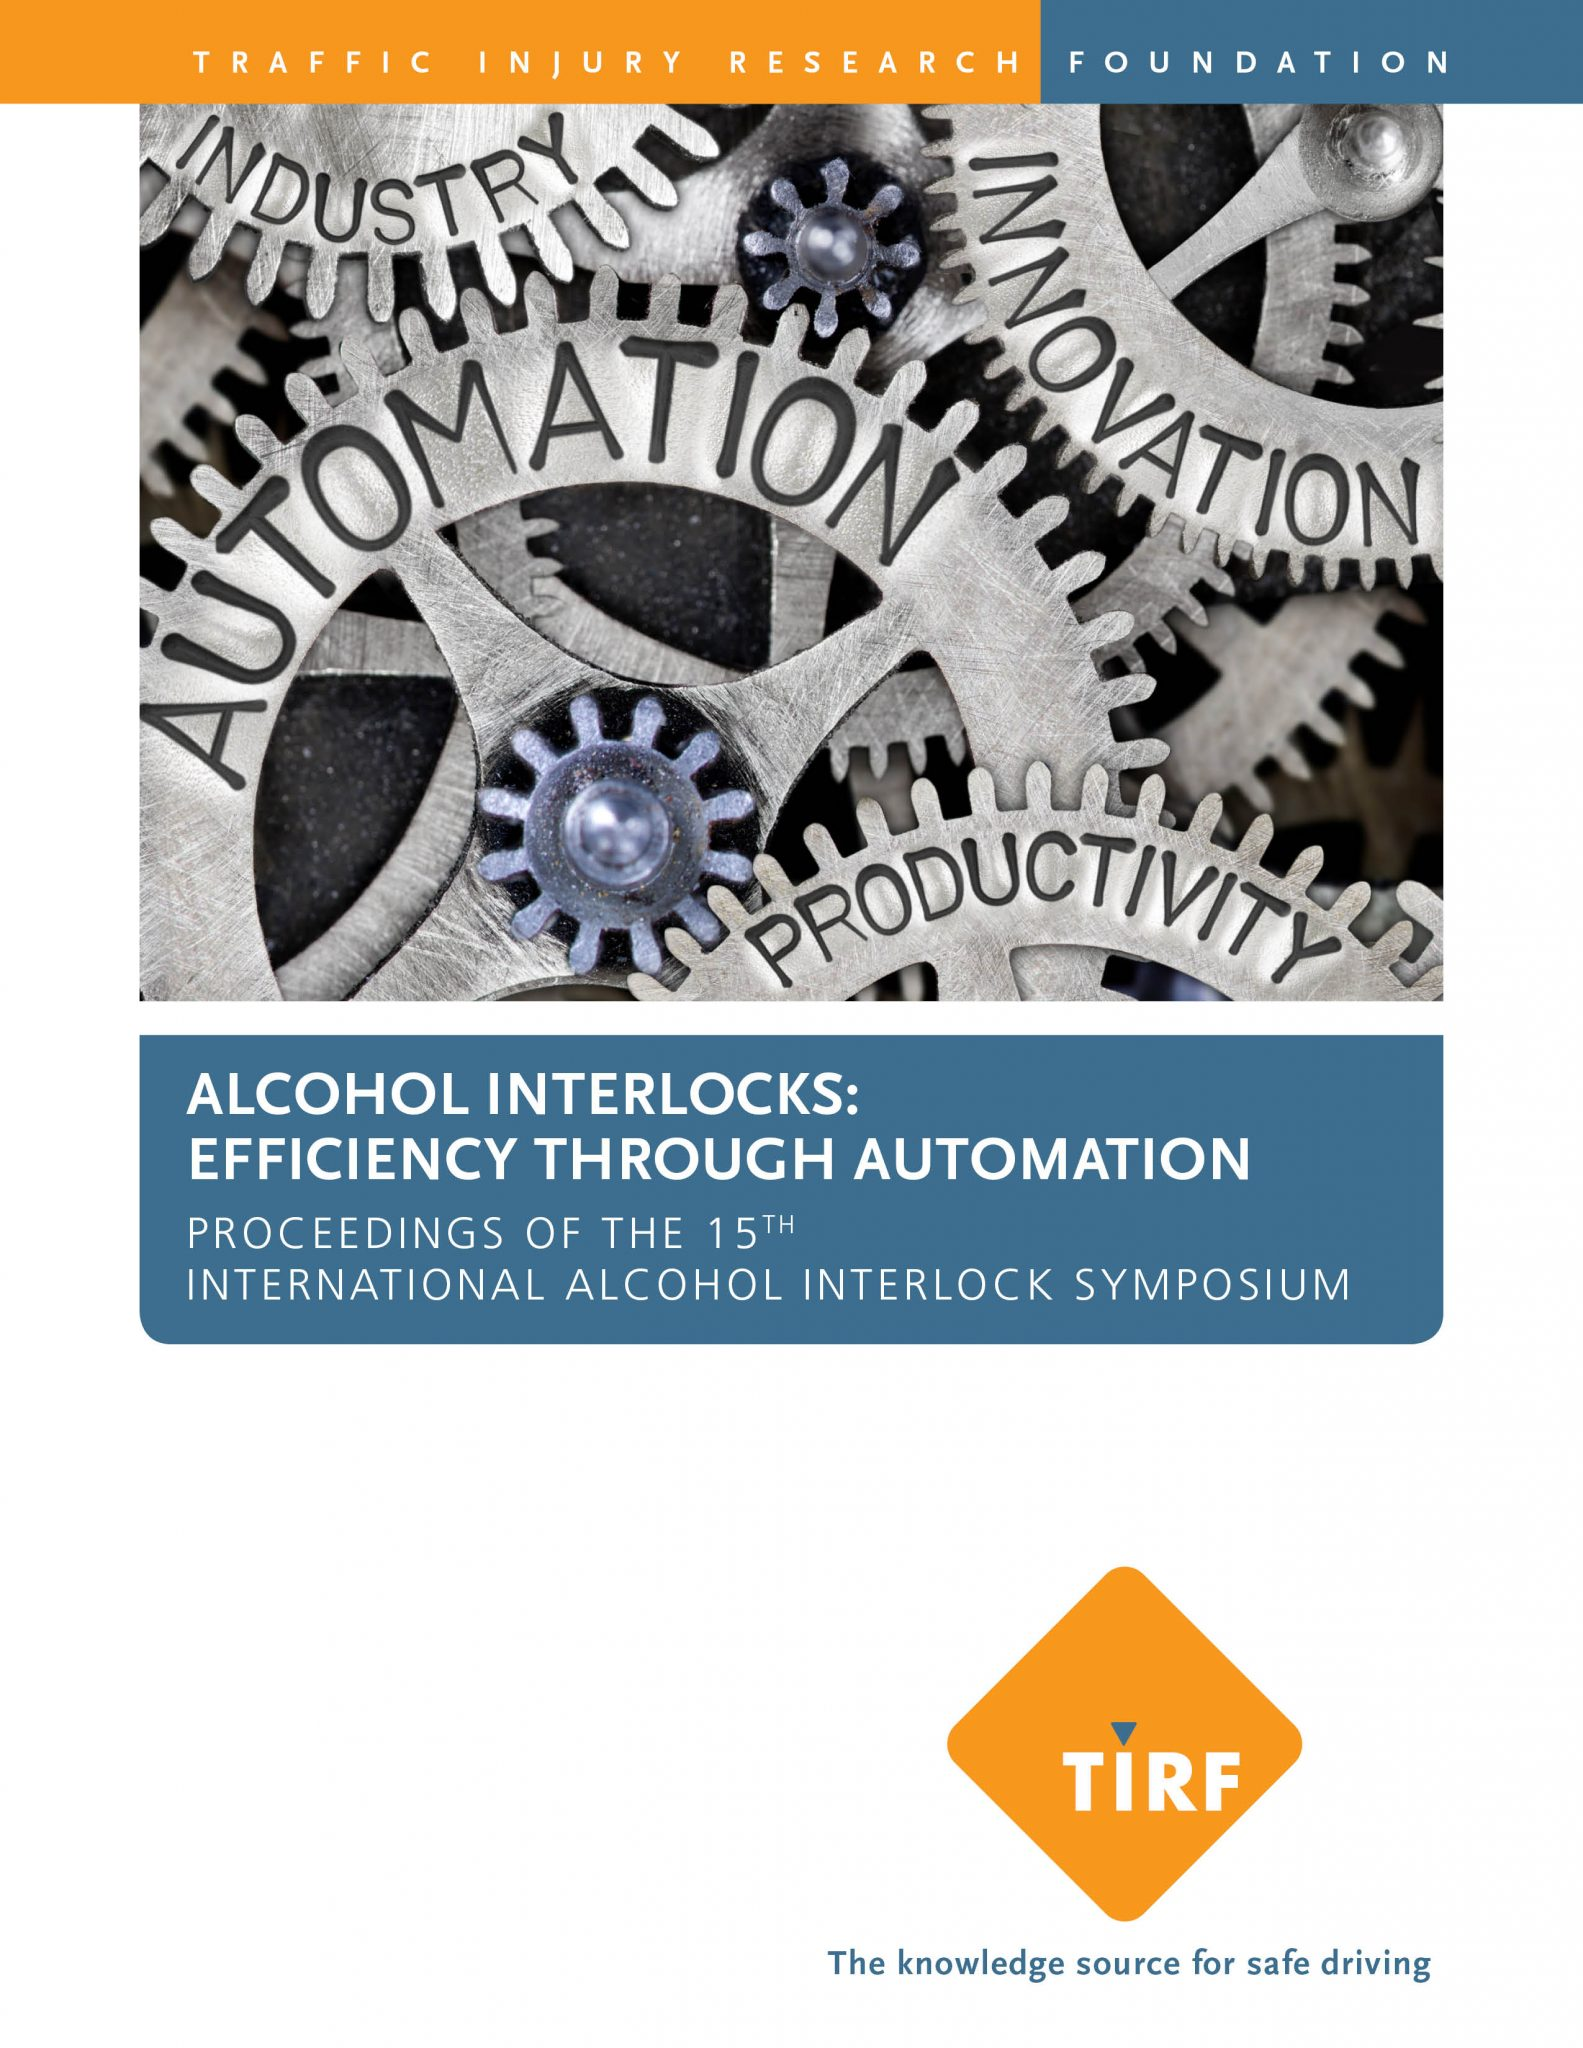 Alcohol Interlocks: Efficiency Through Automation – Proceedings of the 15th International Alcohol Interlock Symposium